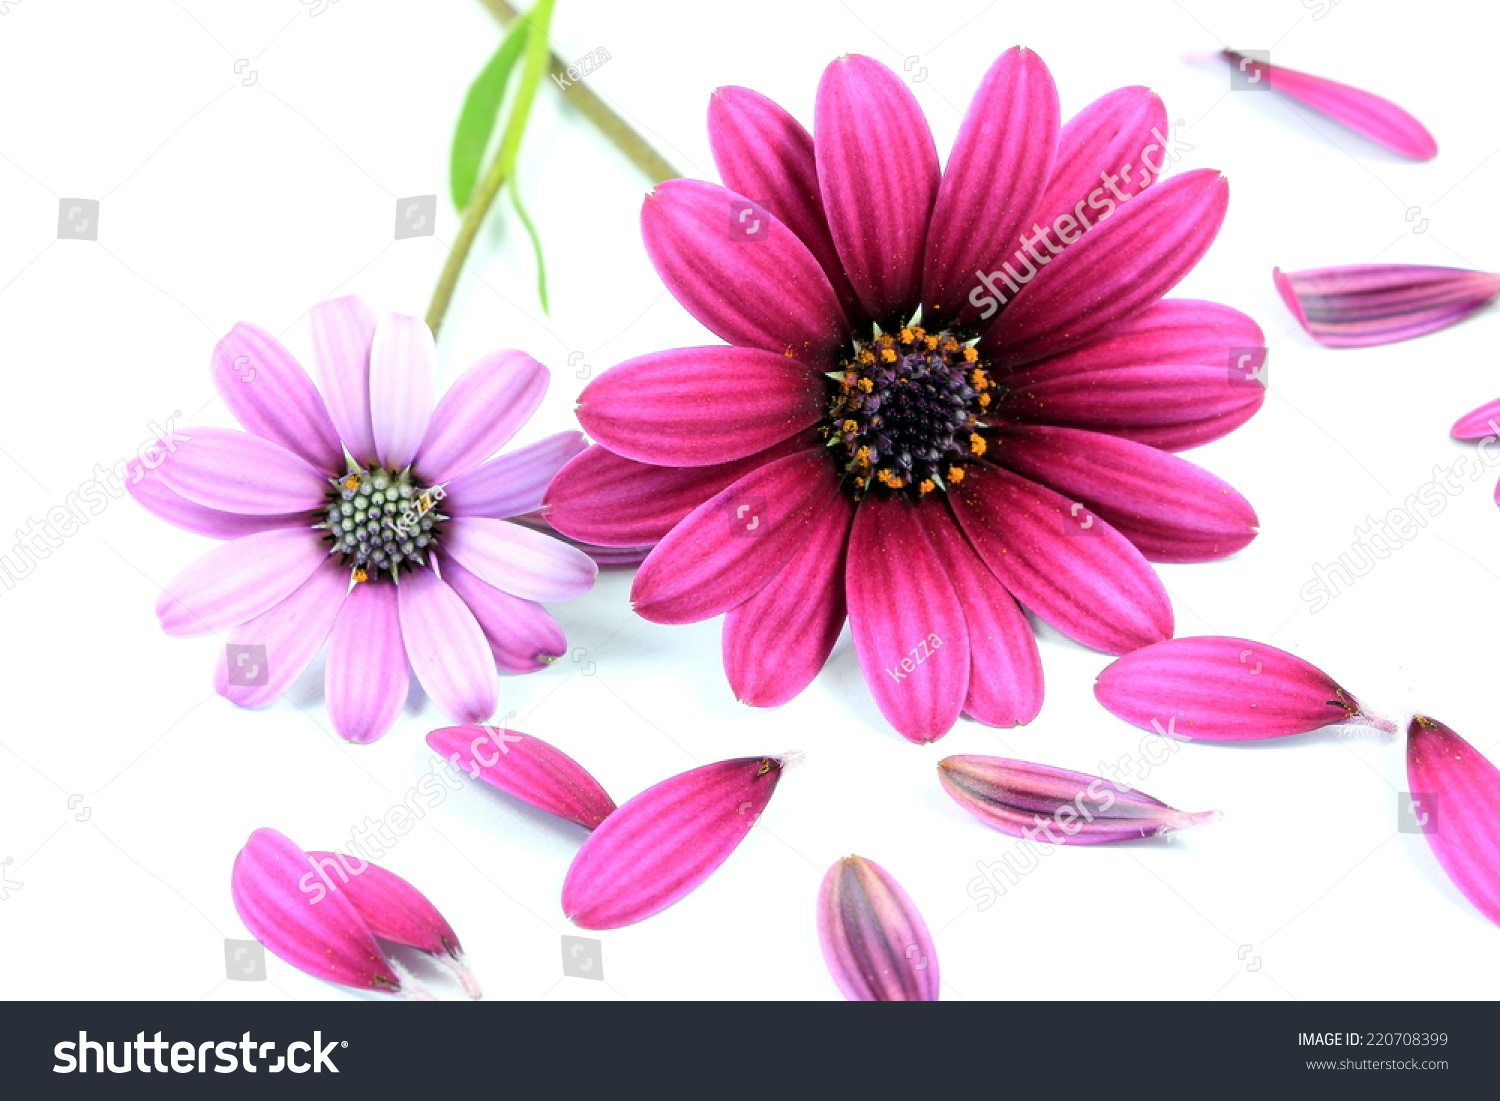 Pink and purple daisy flowers on a white background ez canvas id 220708399 izmirmasajfo